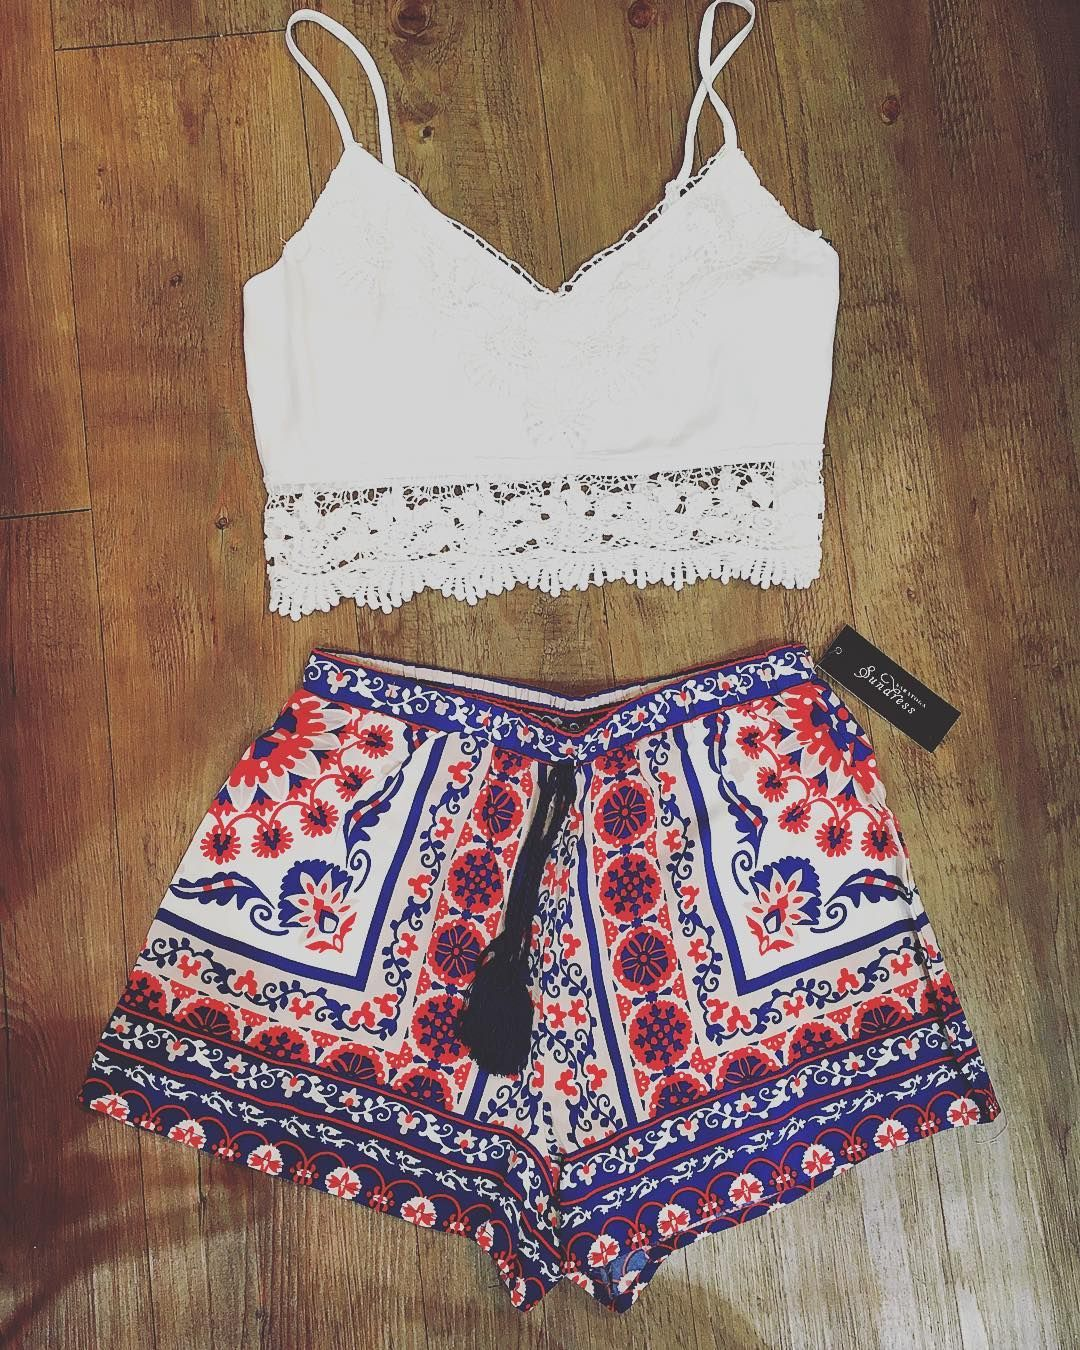 New shorts and crop tops! ❤️ @saratogasundress instagram